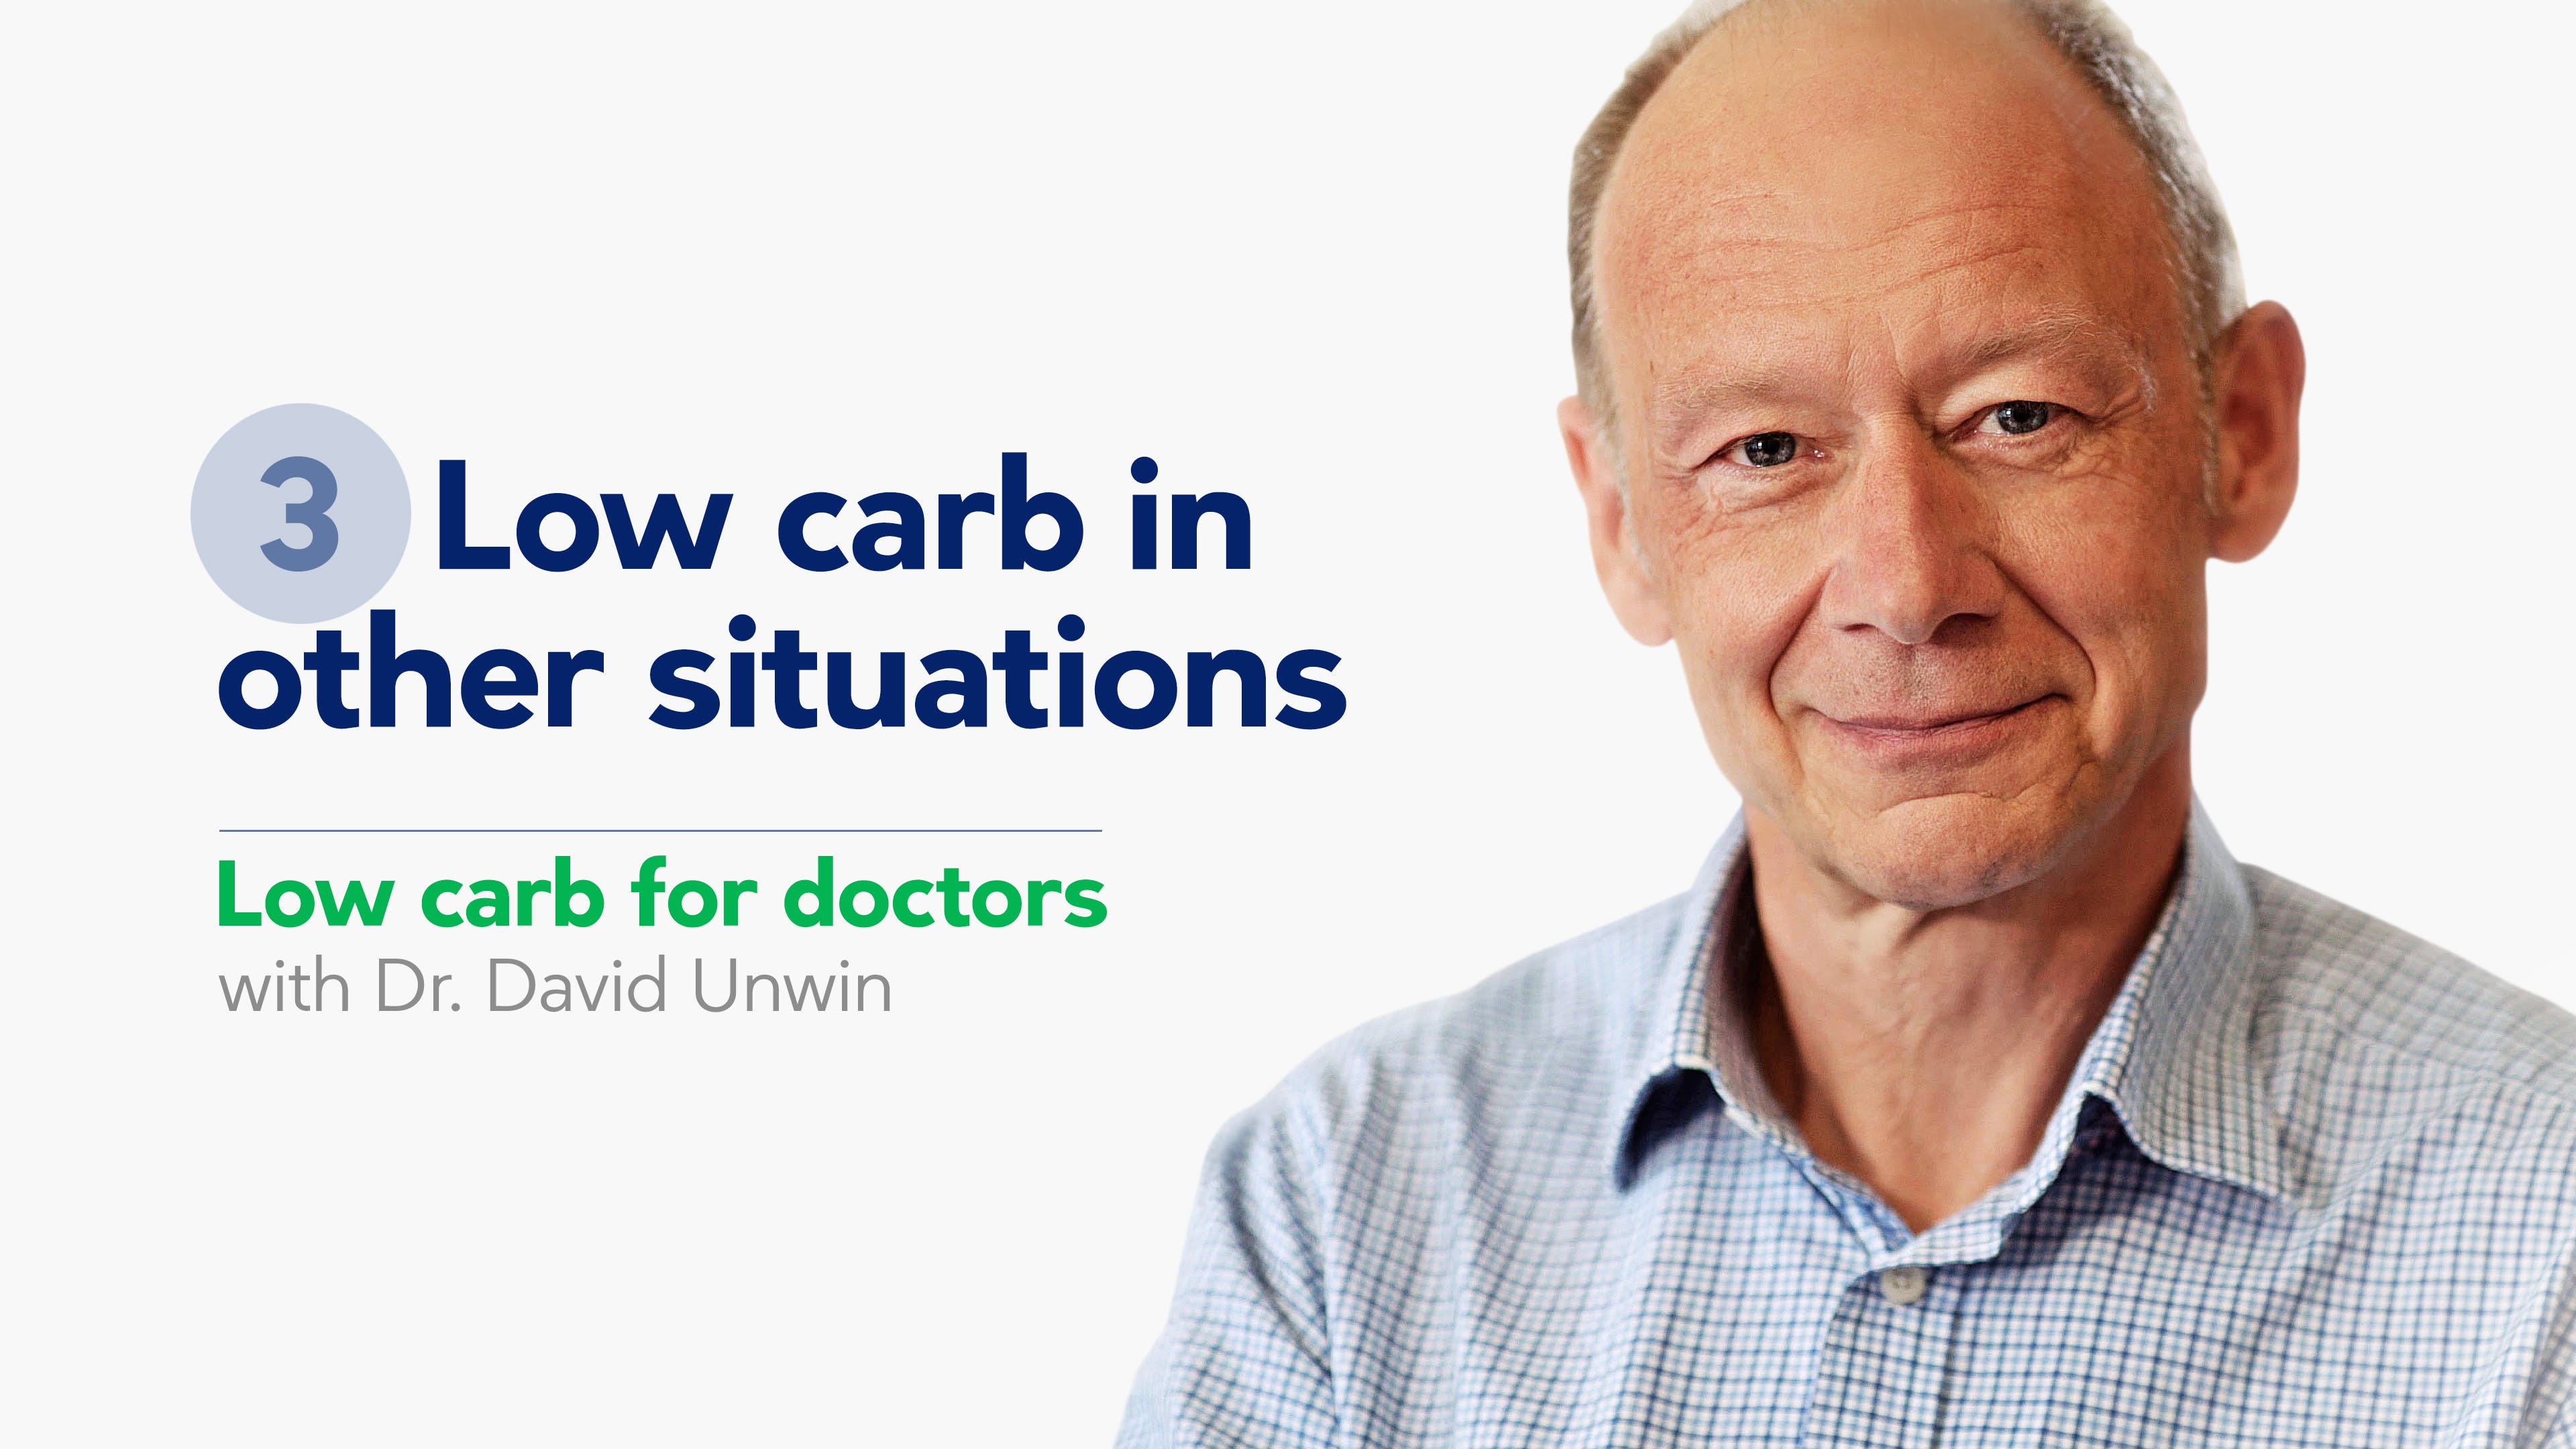 Low carb for doctors 3: Low carb in other situations